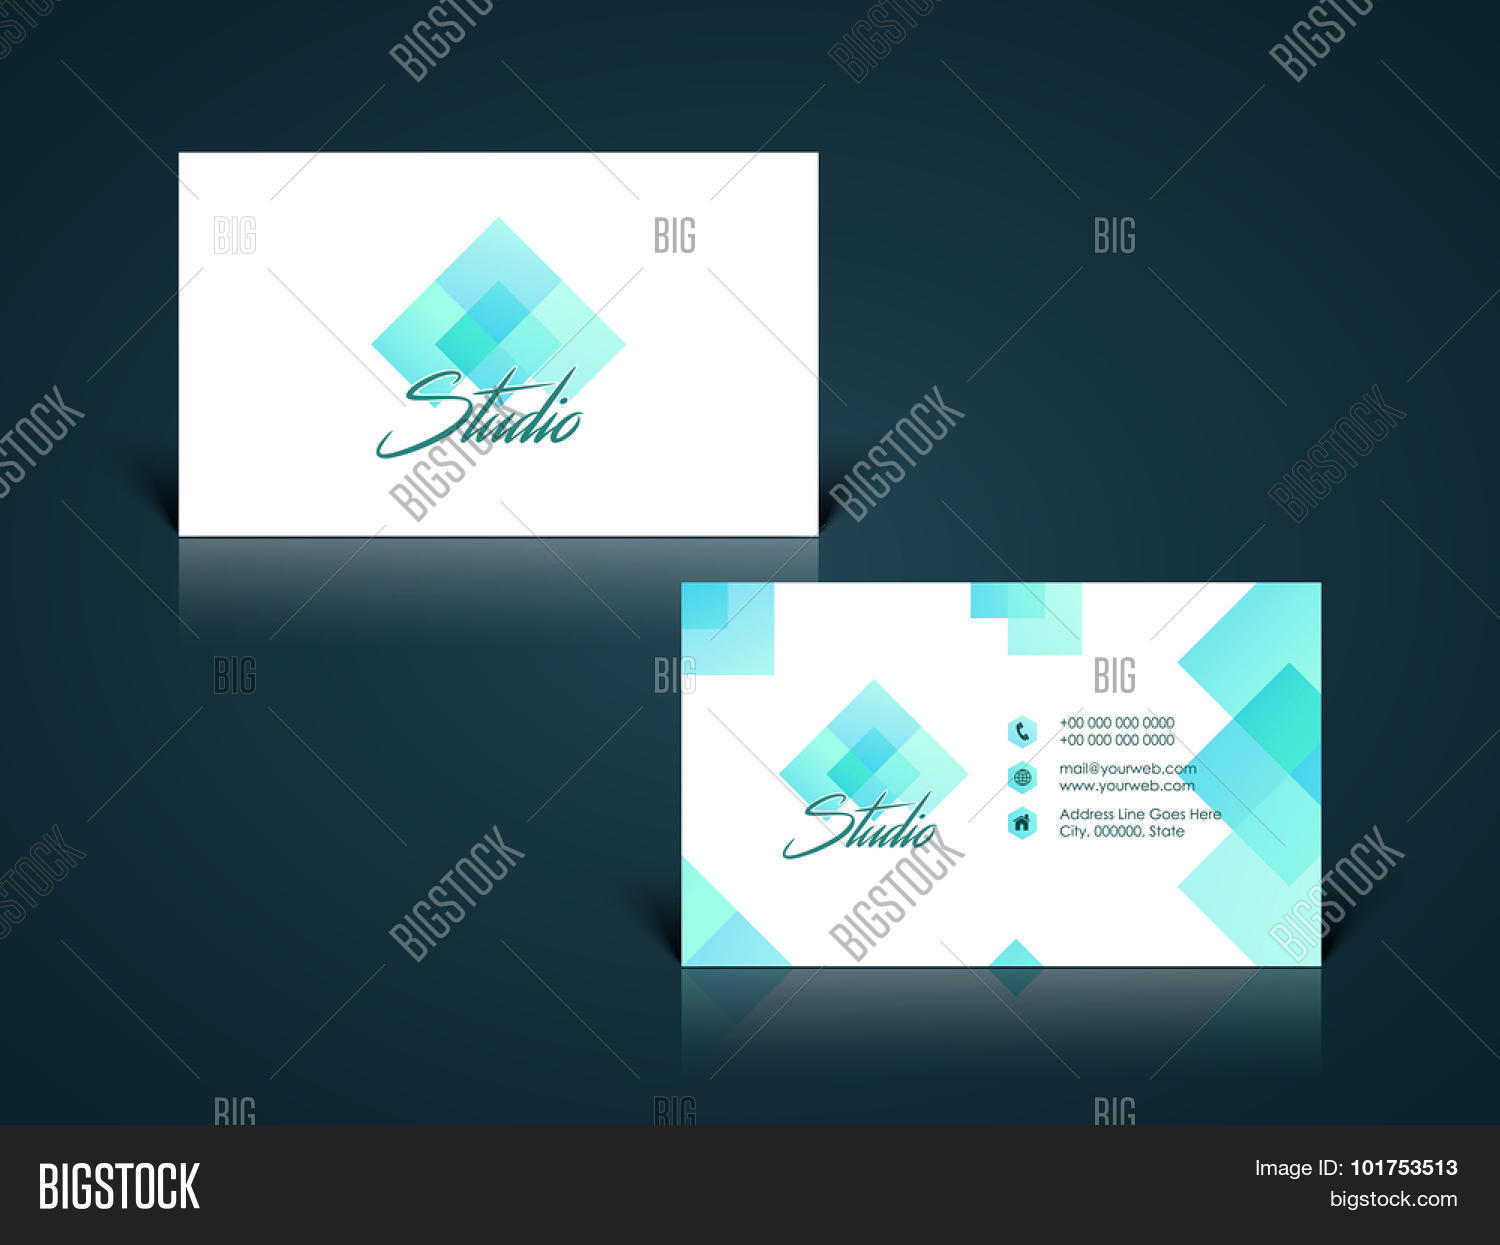 Creative Abstract Design Decorated Vector & Photo | Bigstock